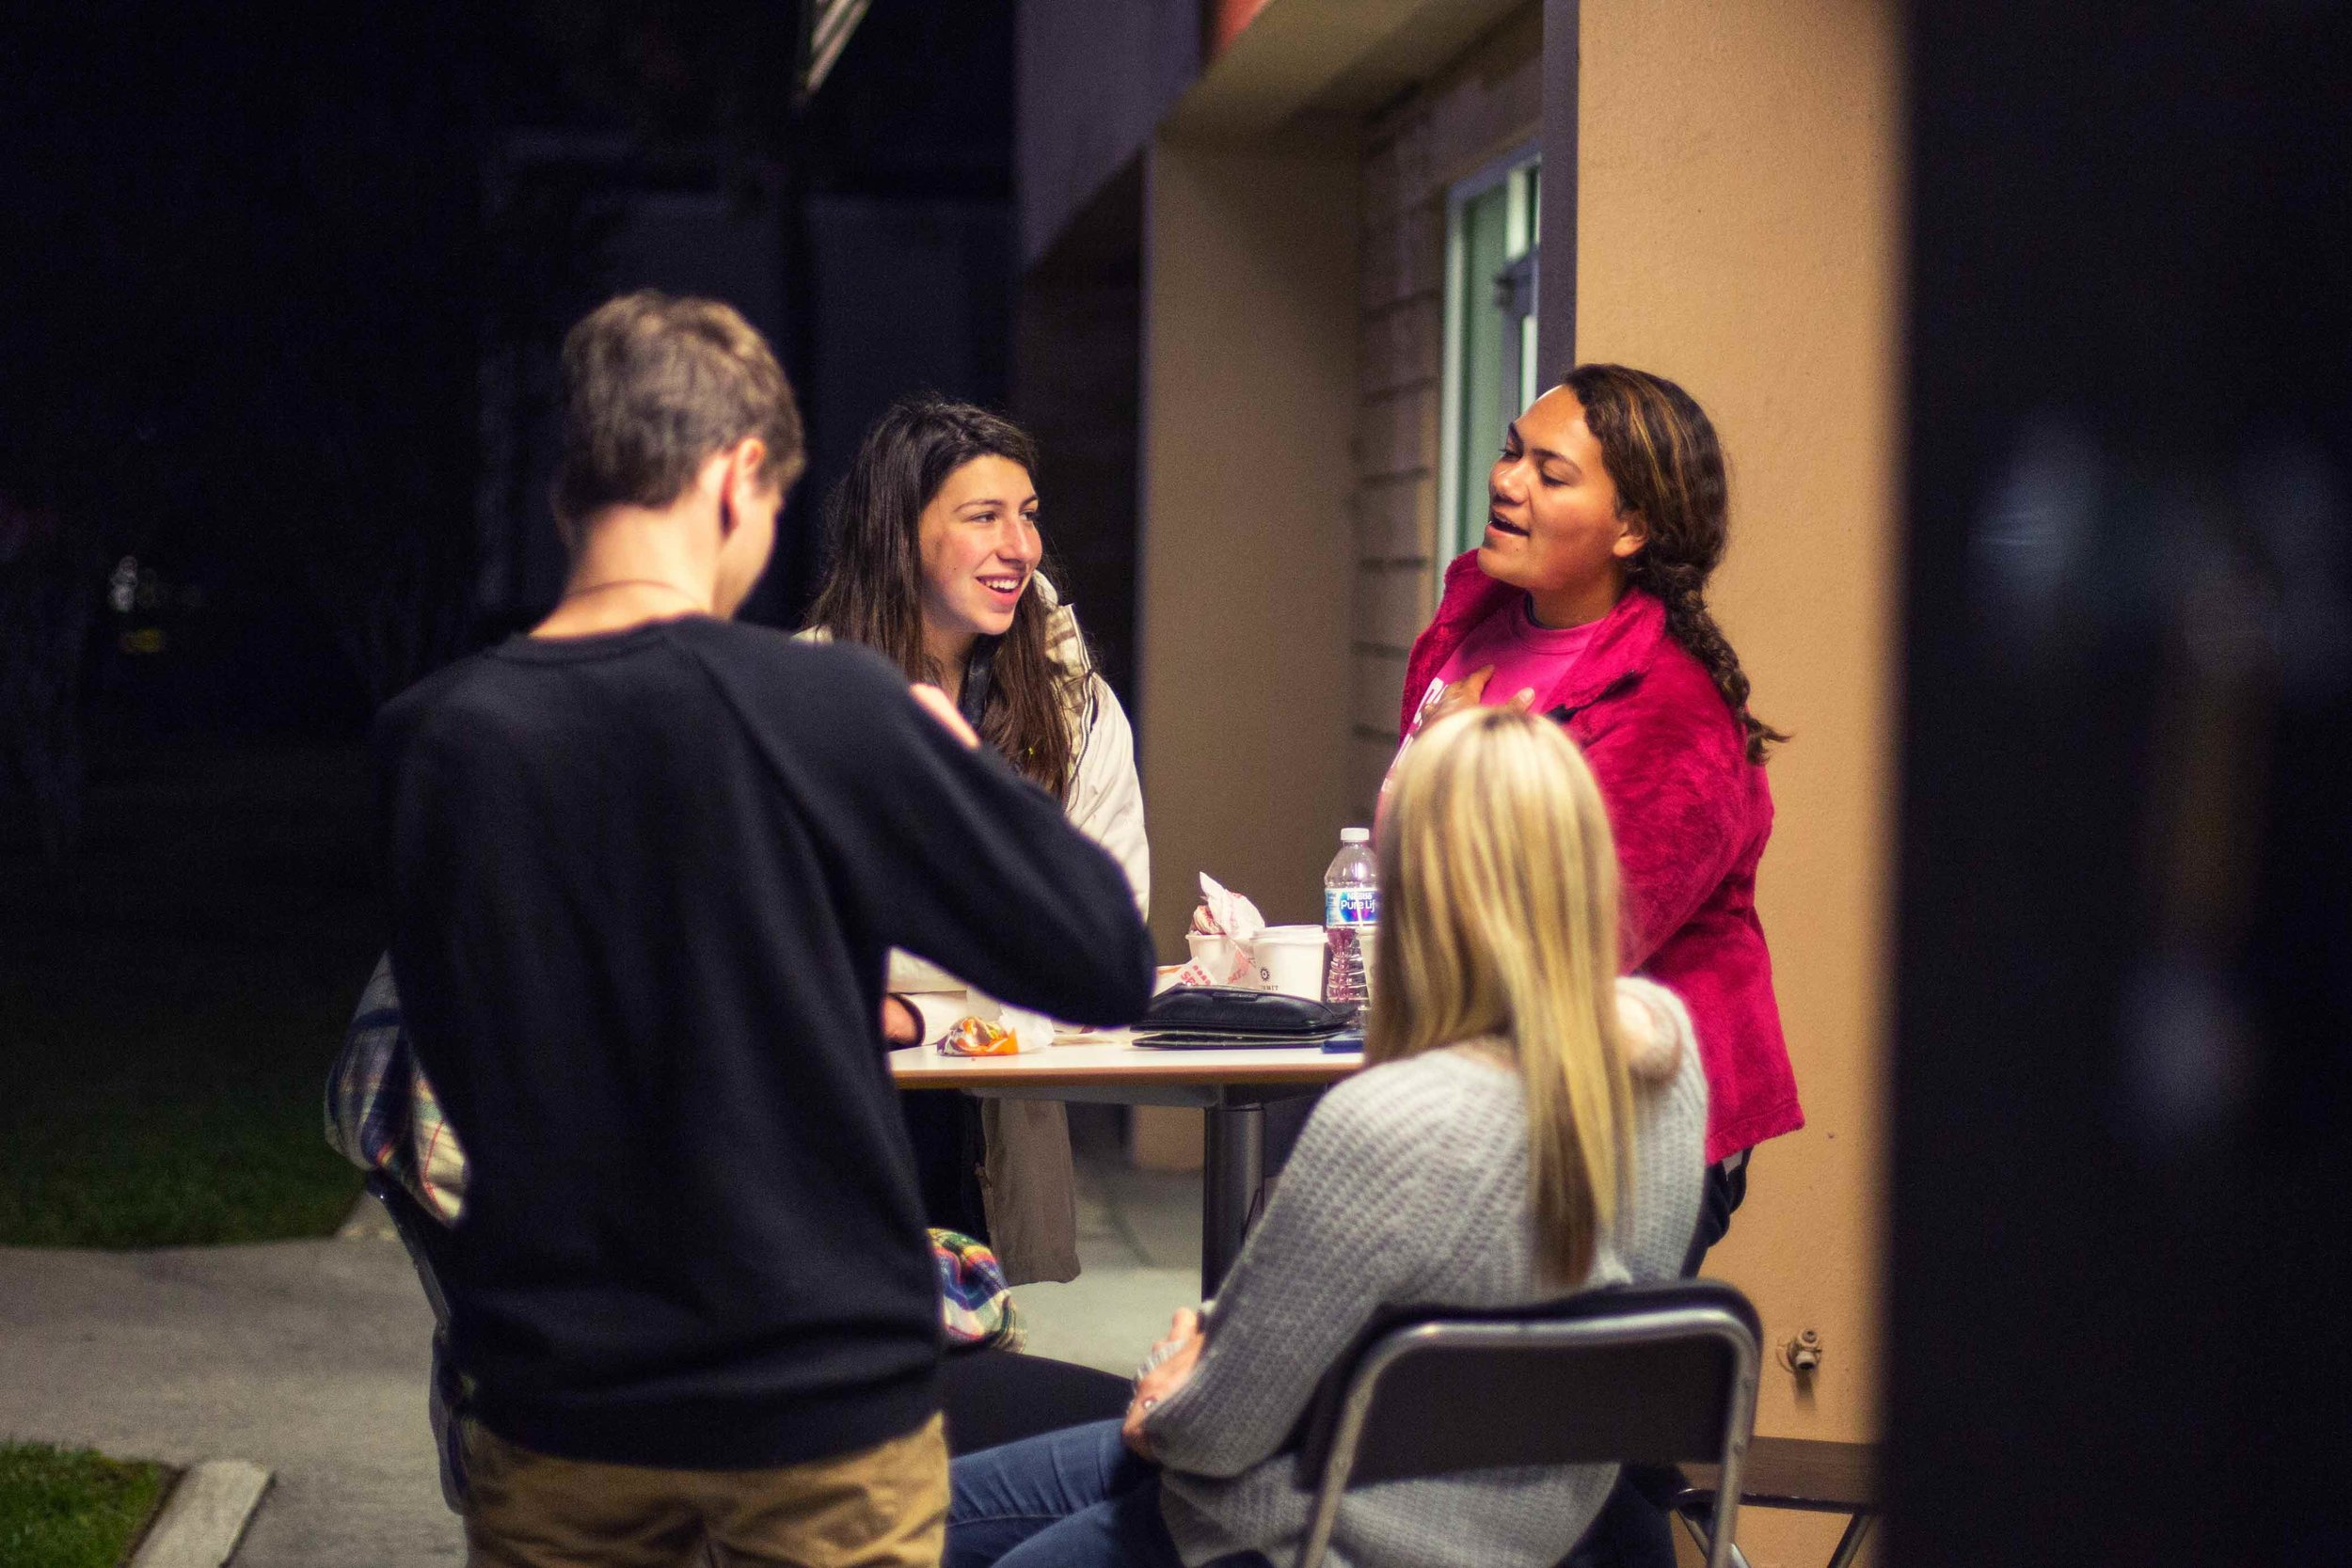 Edge | High School - Sundays at 6:30-8:30 p.m. | Herndon, Lake Mary, and Waterford Campuses